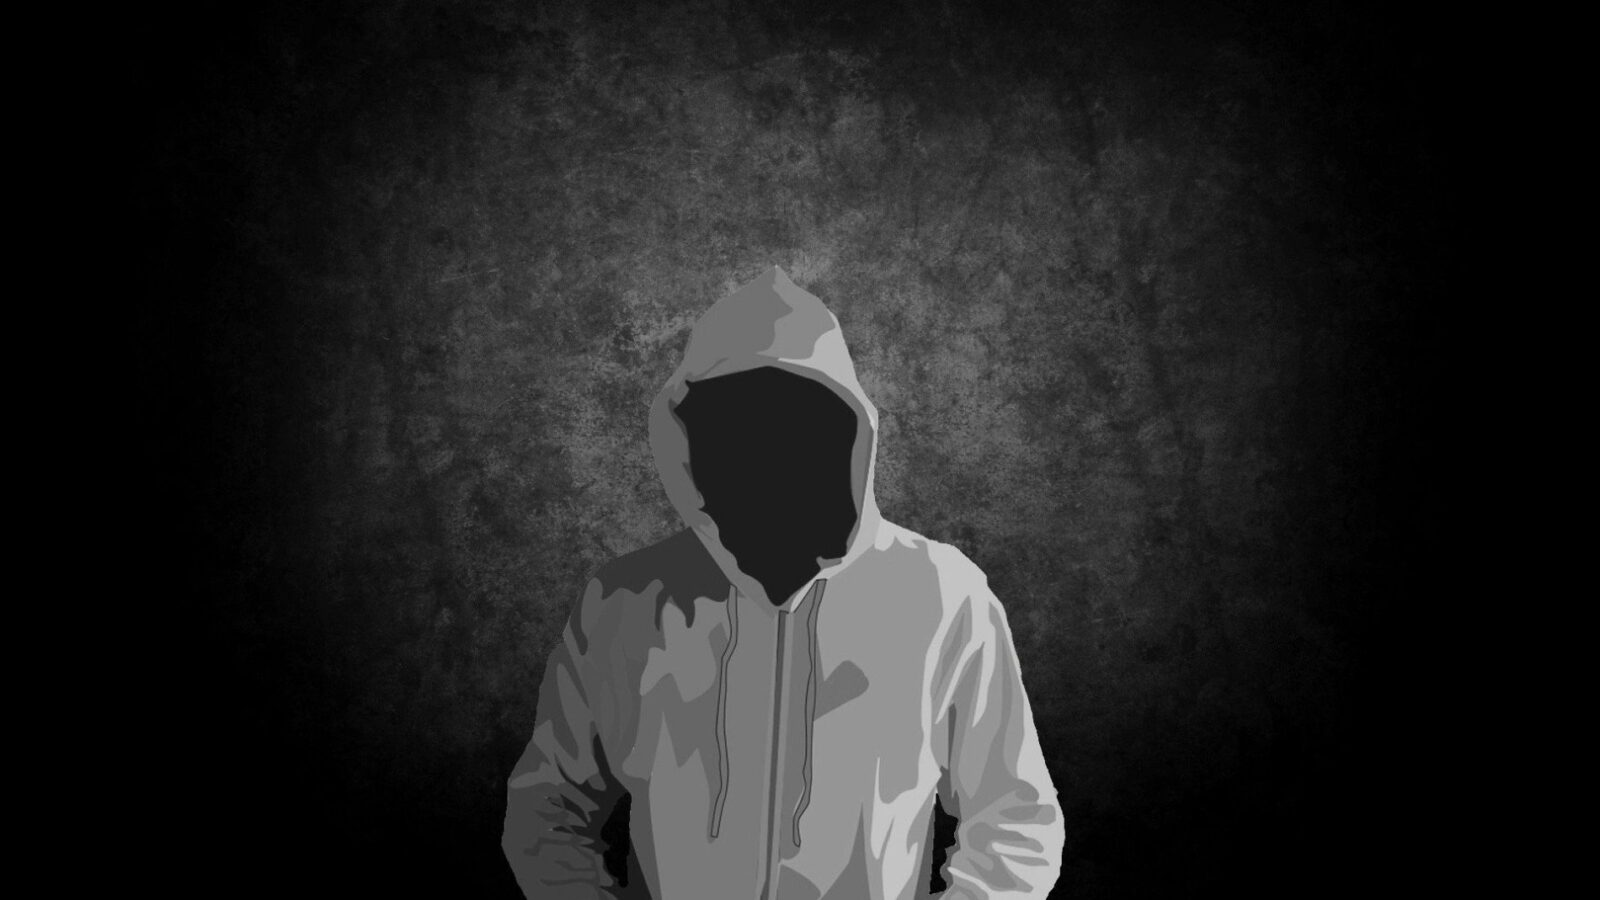 Abstract-dark-hoodies-wallpaper-lonely-men-black